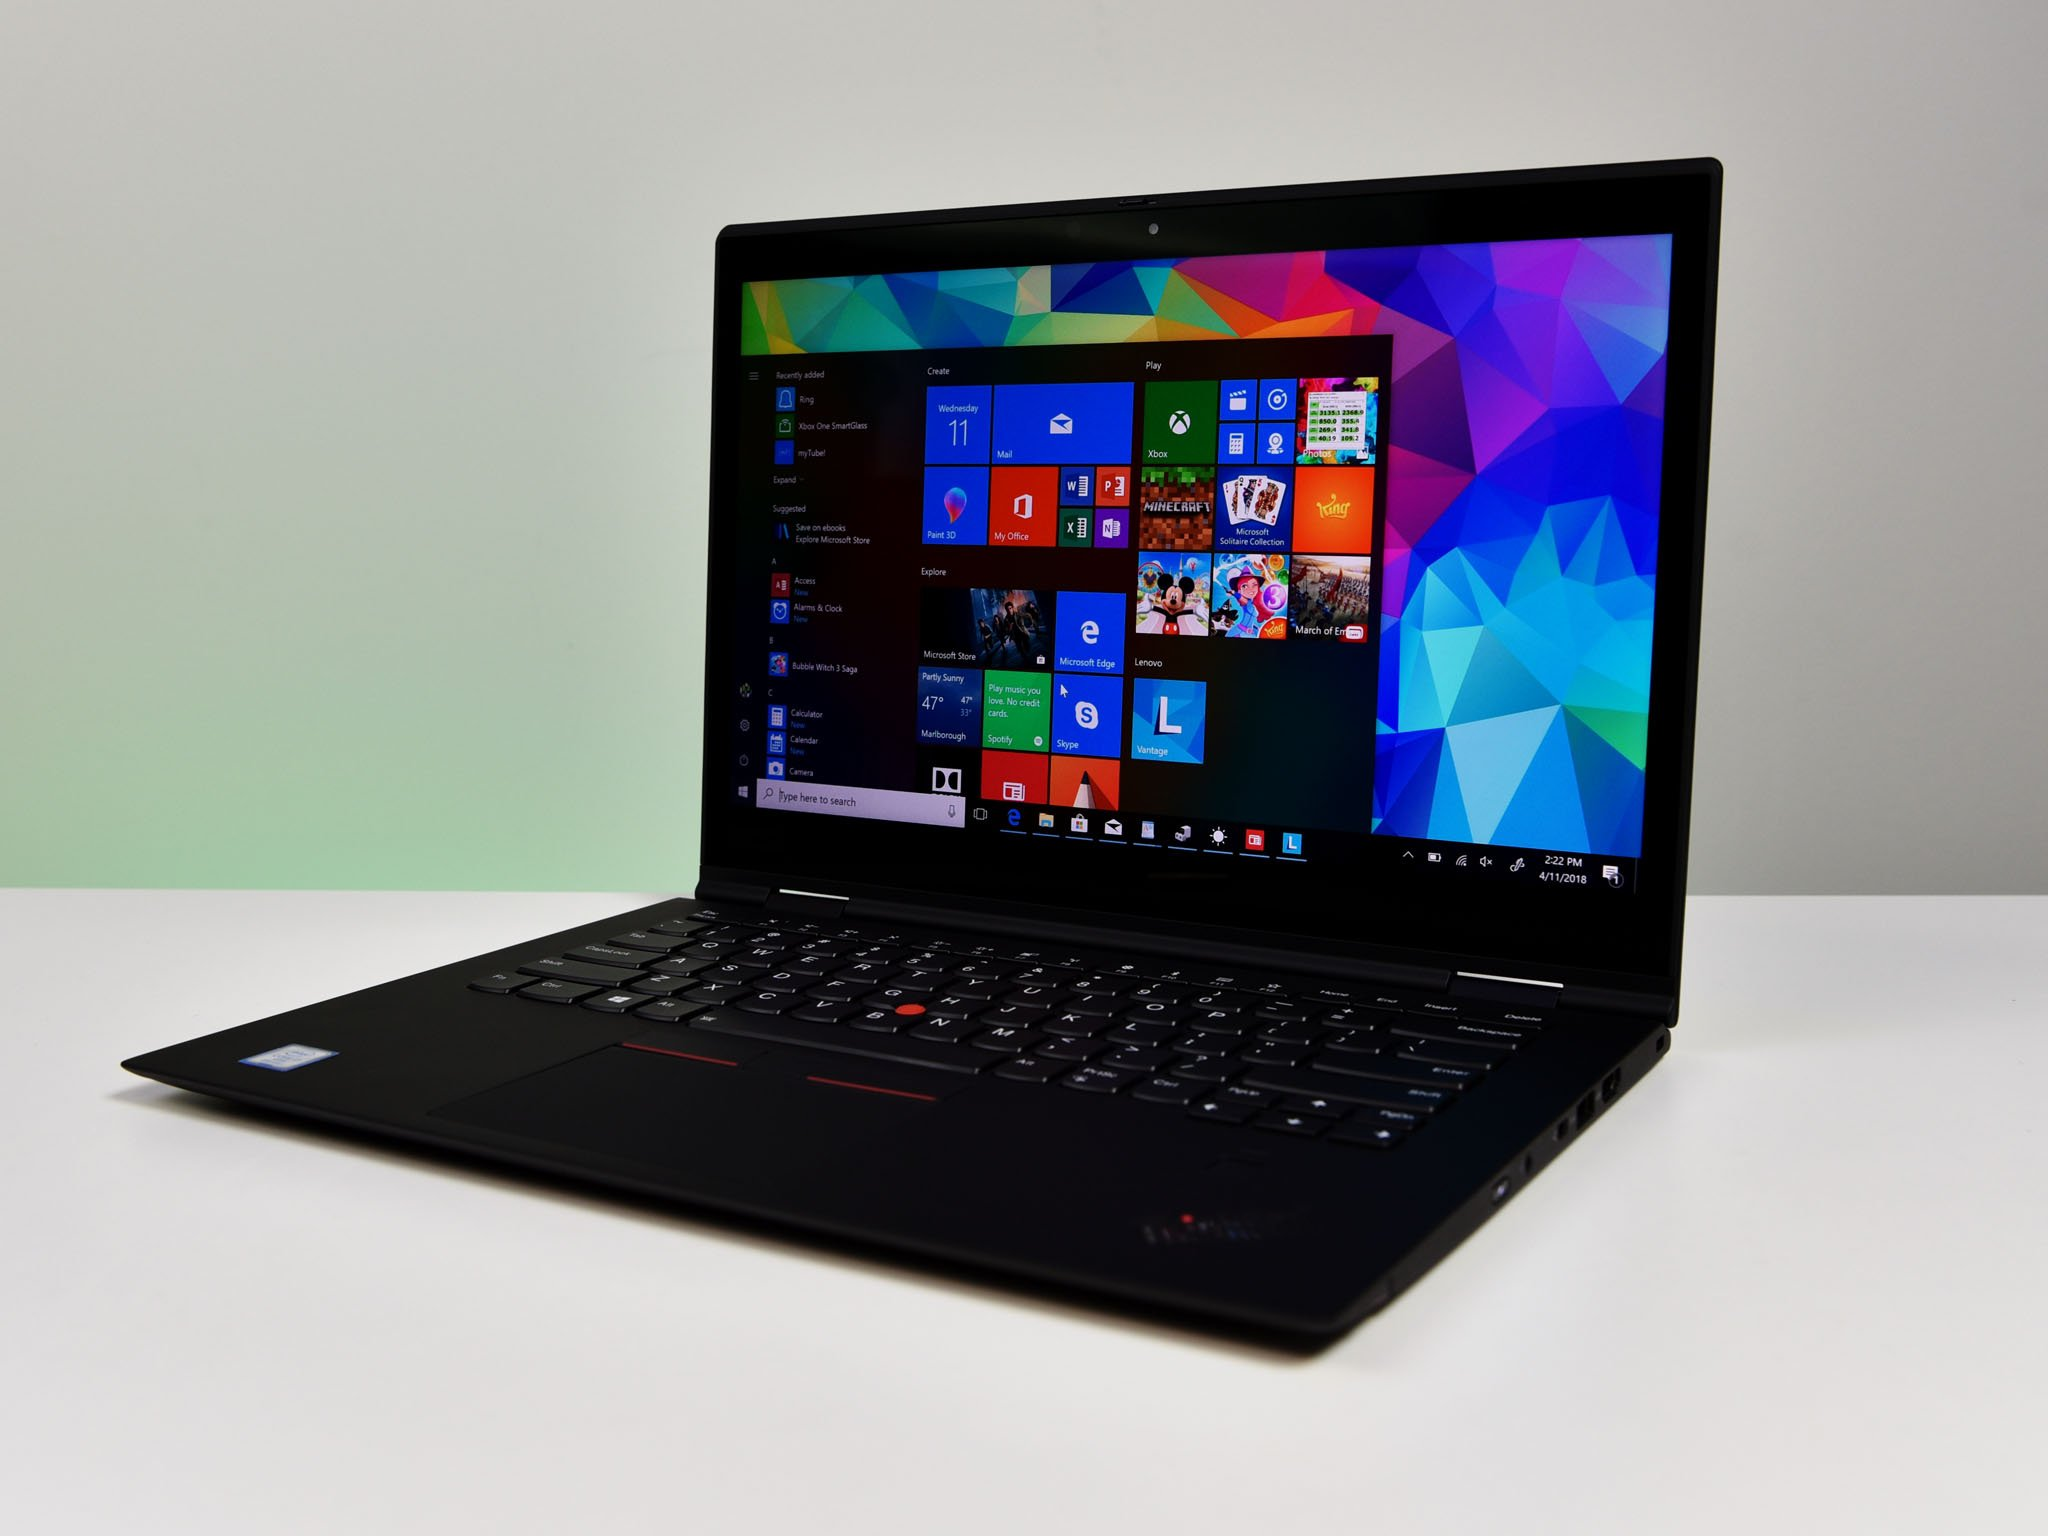 Convertible Center Avis Lenovo Thinkpad X1 Yoga 2018 Review Nearly Perfect 2 In 1